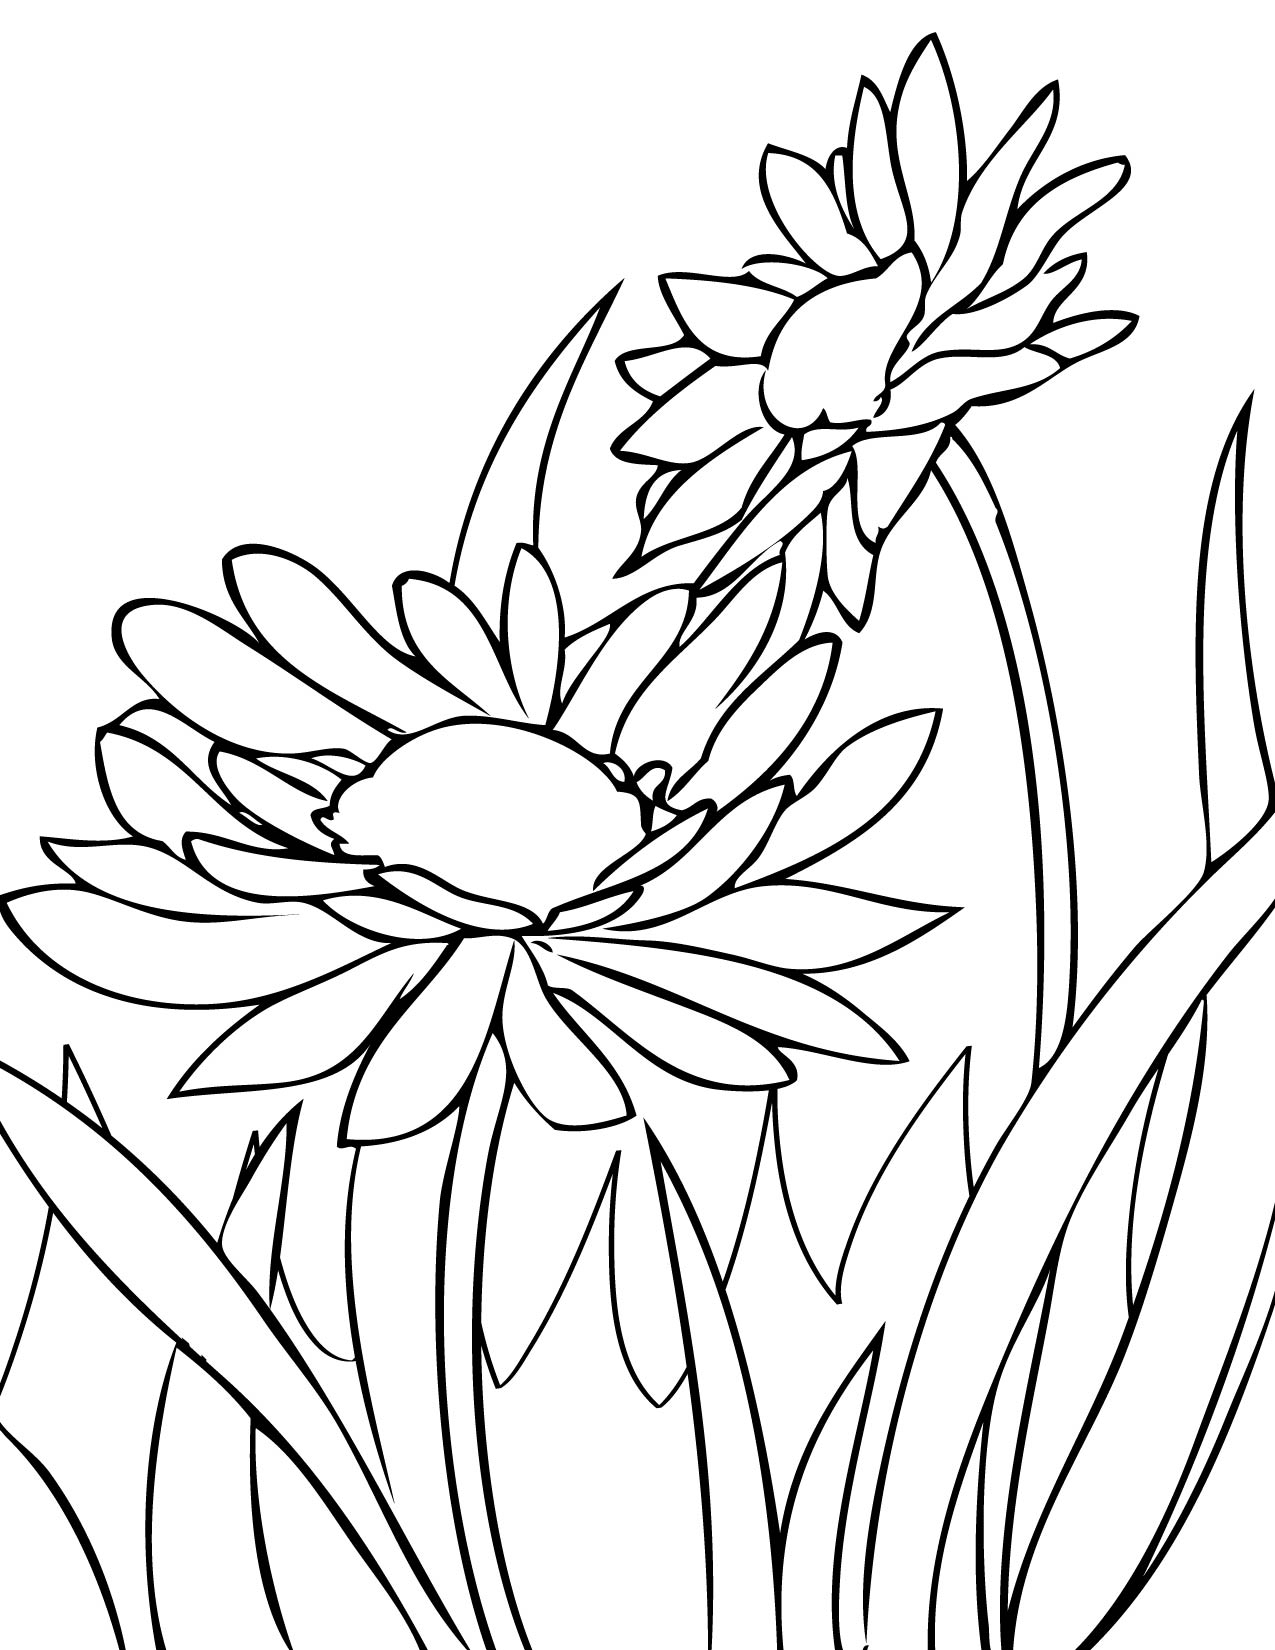 1275x1650 Daisy Flower Coloring Pages Daisy Flower Coloring Pages Imposing